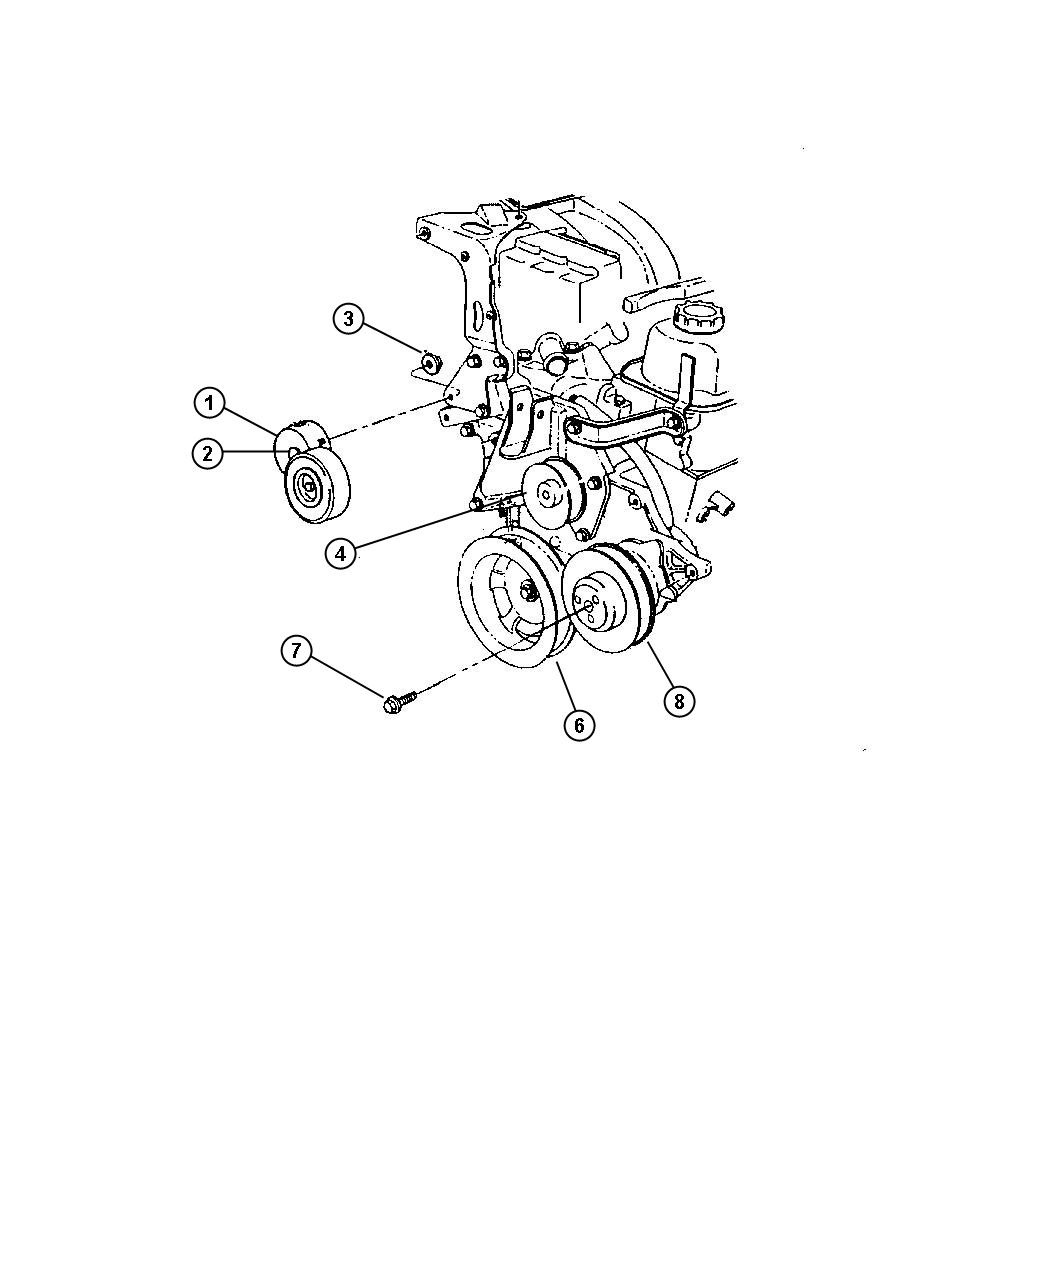 Chrysler Town Amp Country Shield Accessory Drive 3 3l V6